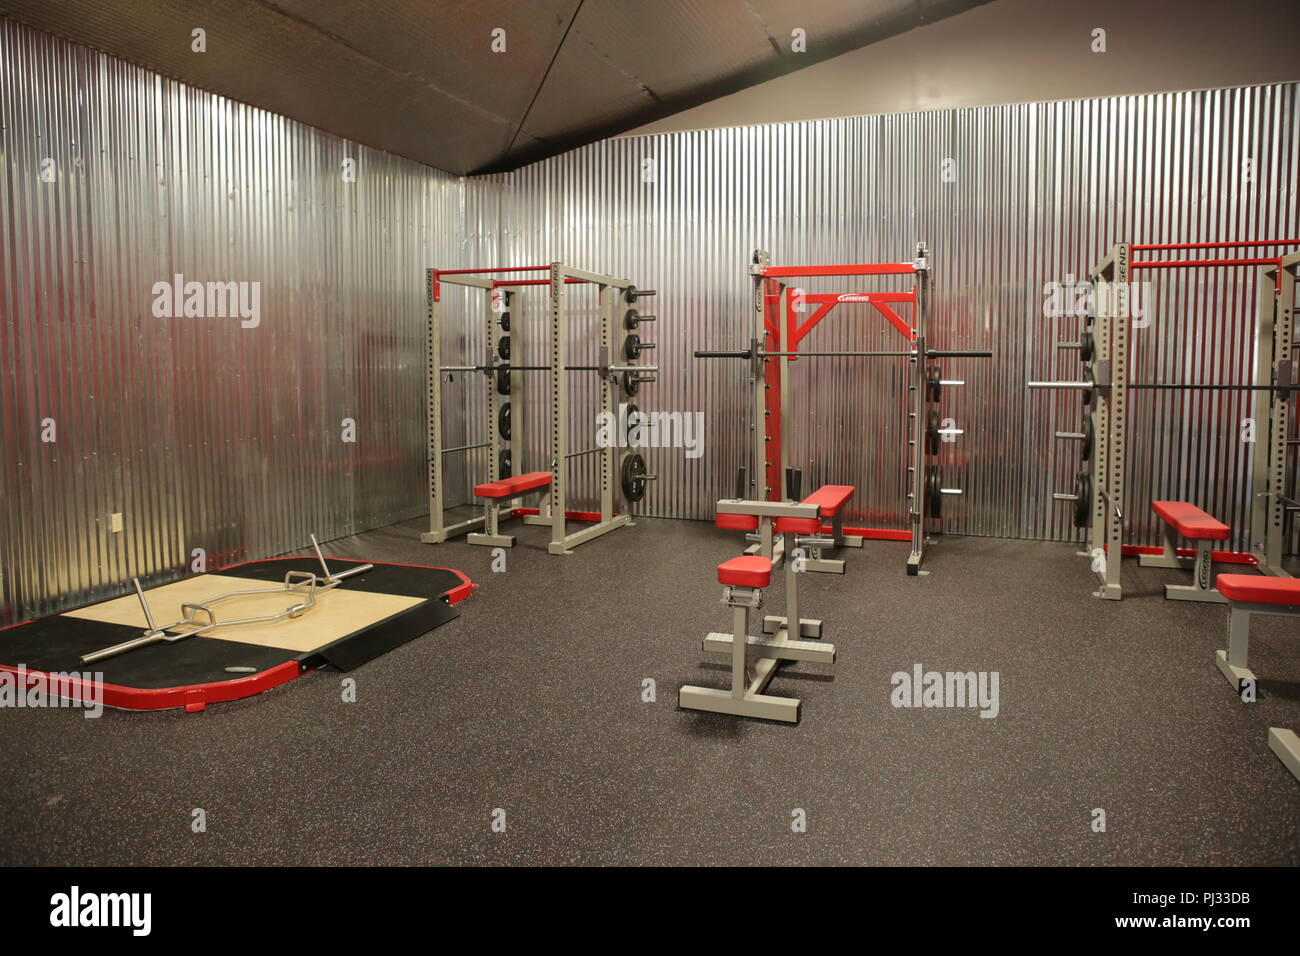 fitness equipment at a modern gym - Stock Image